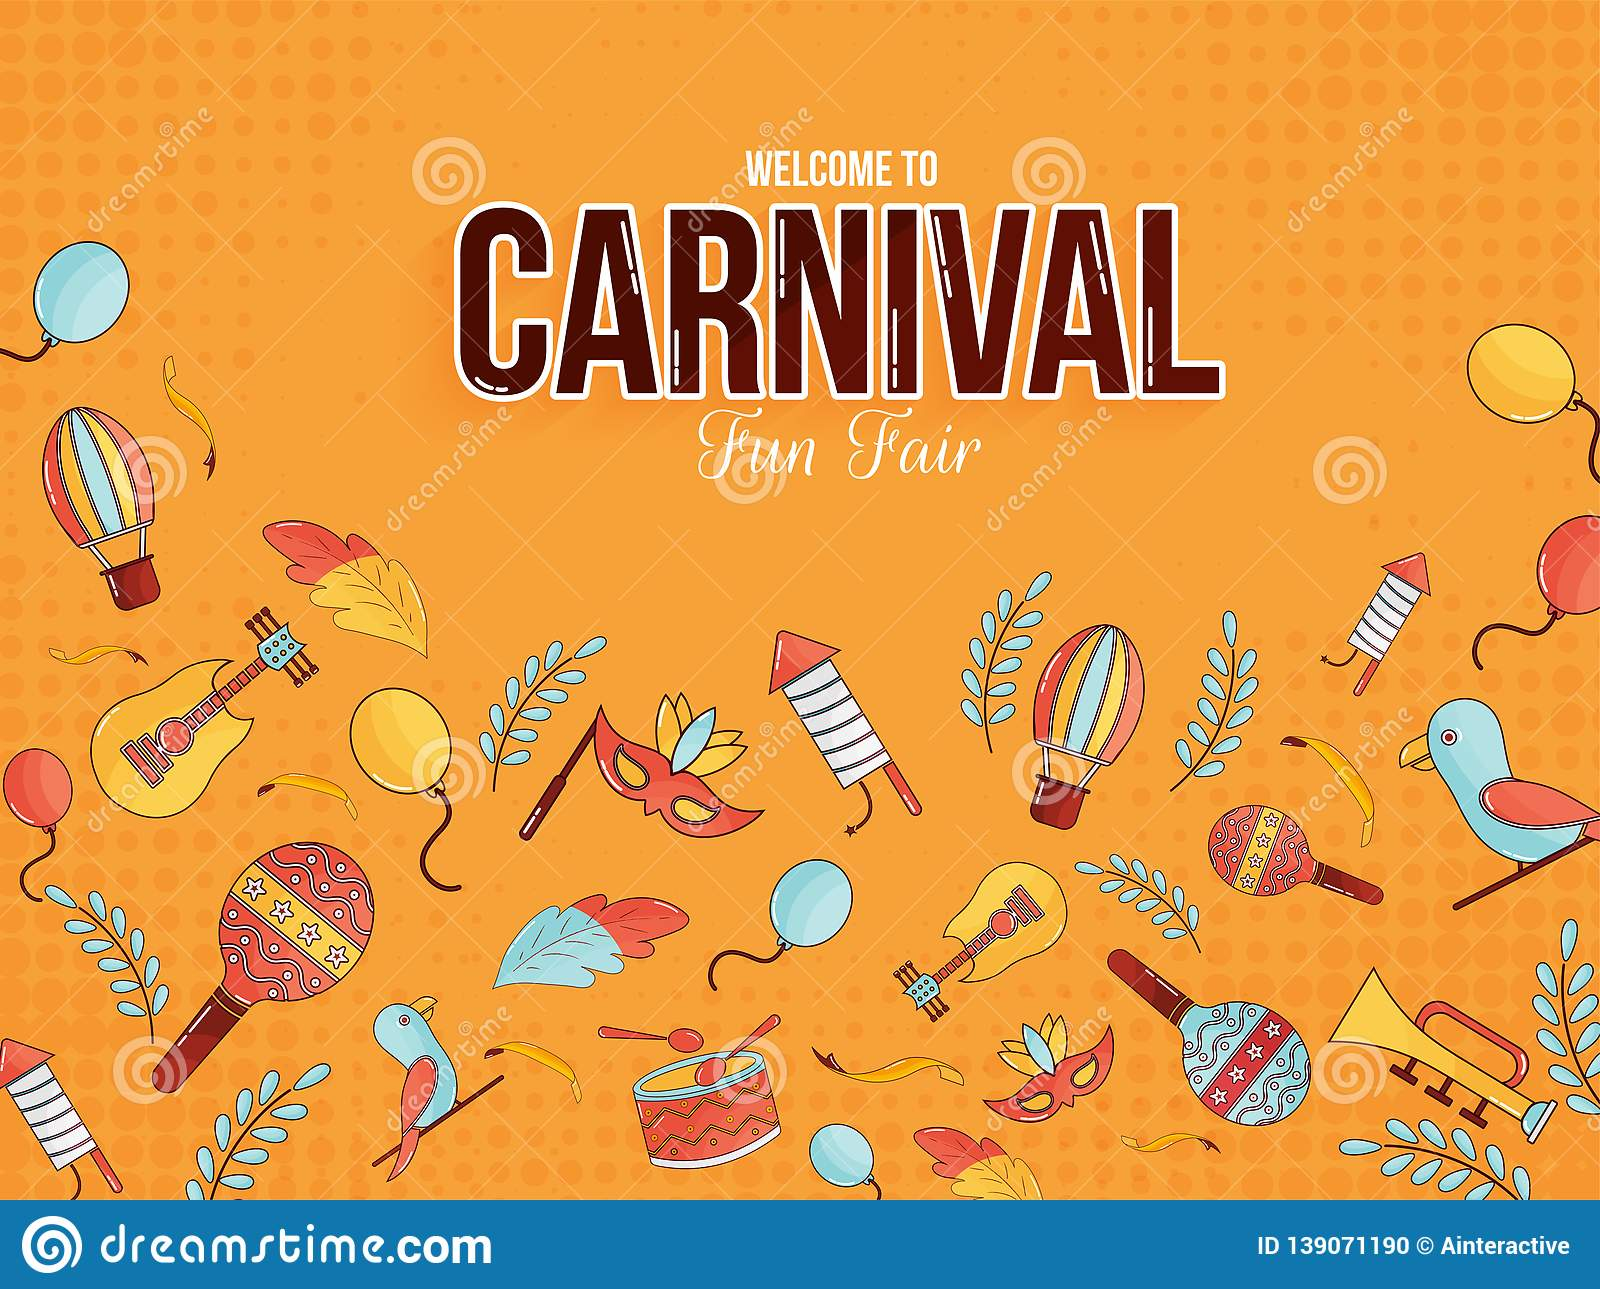 Welcome to carnival fun fair poster or banner design.